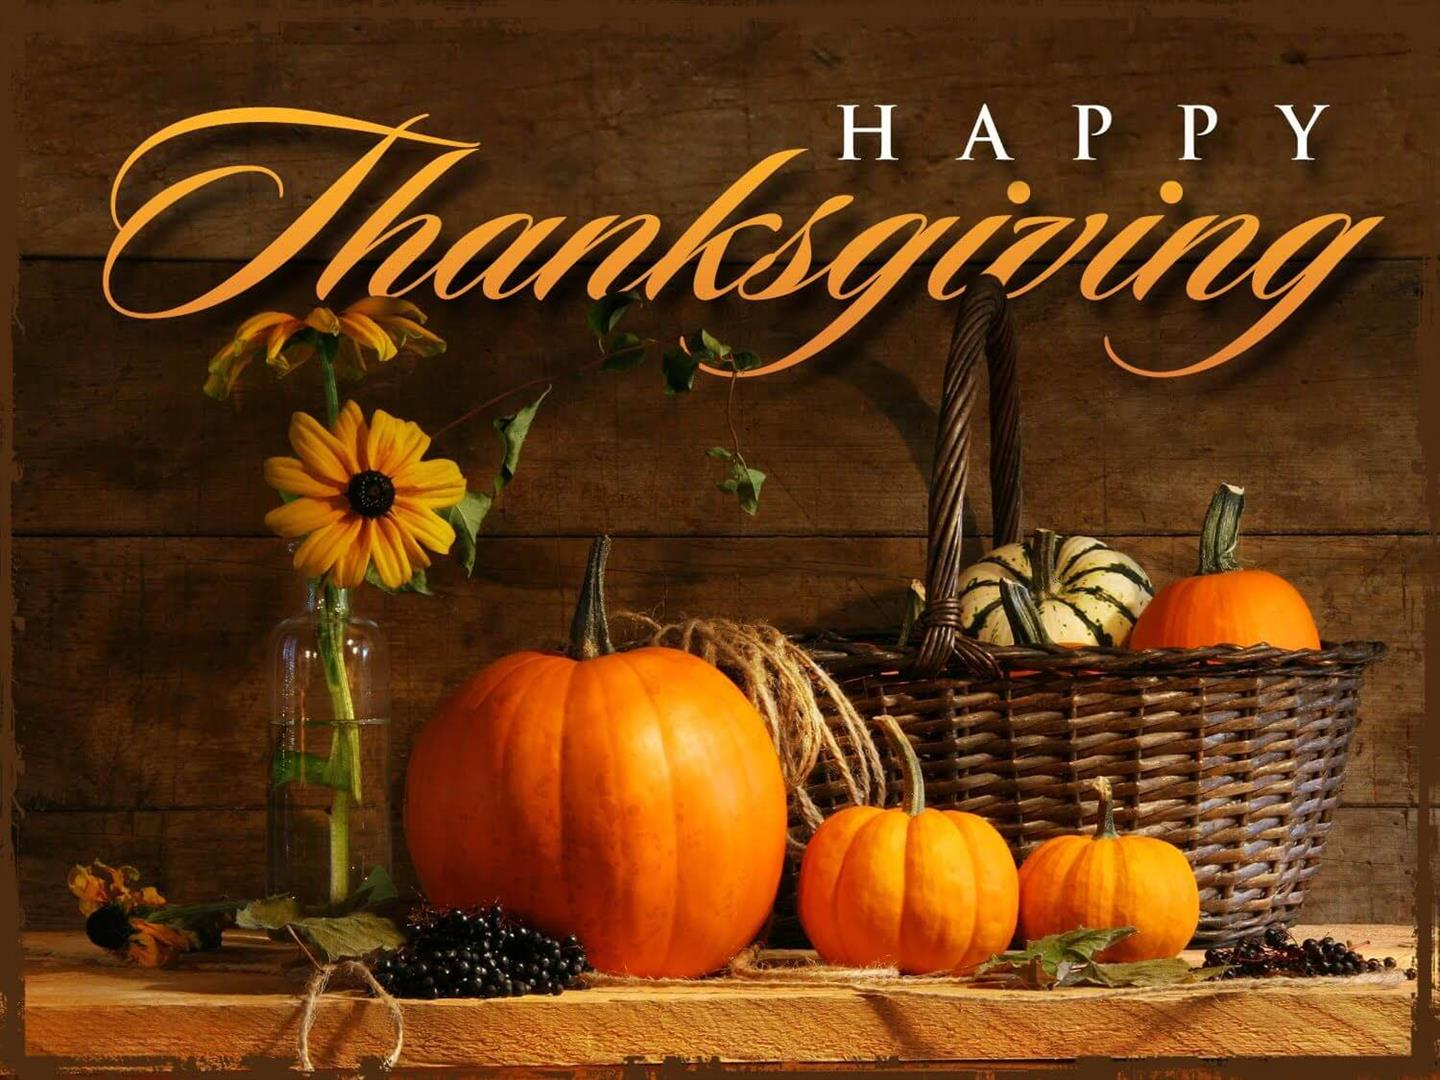 Happy Thanksgiving to Everyone 2019